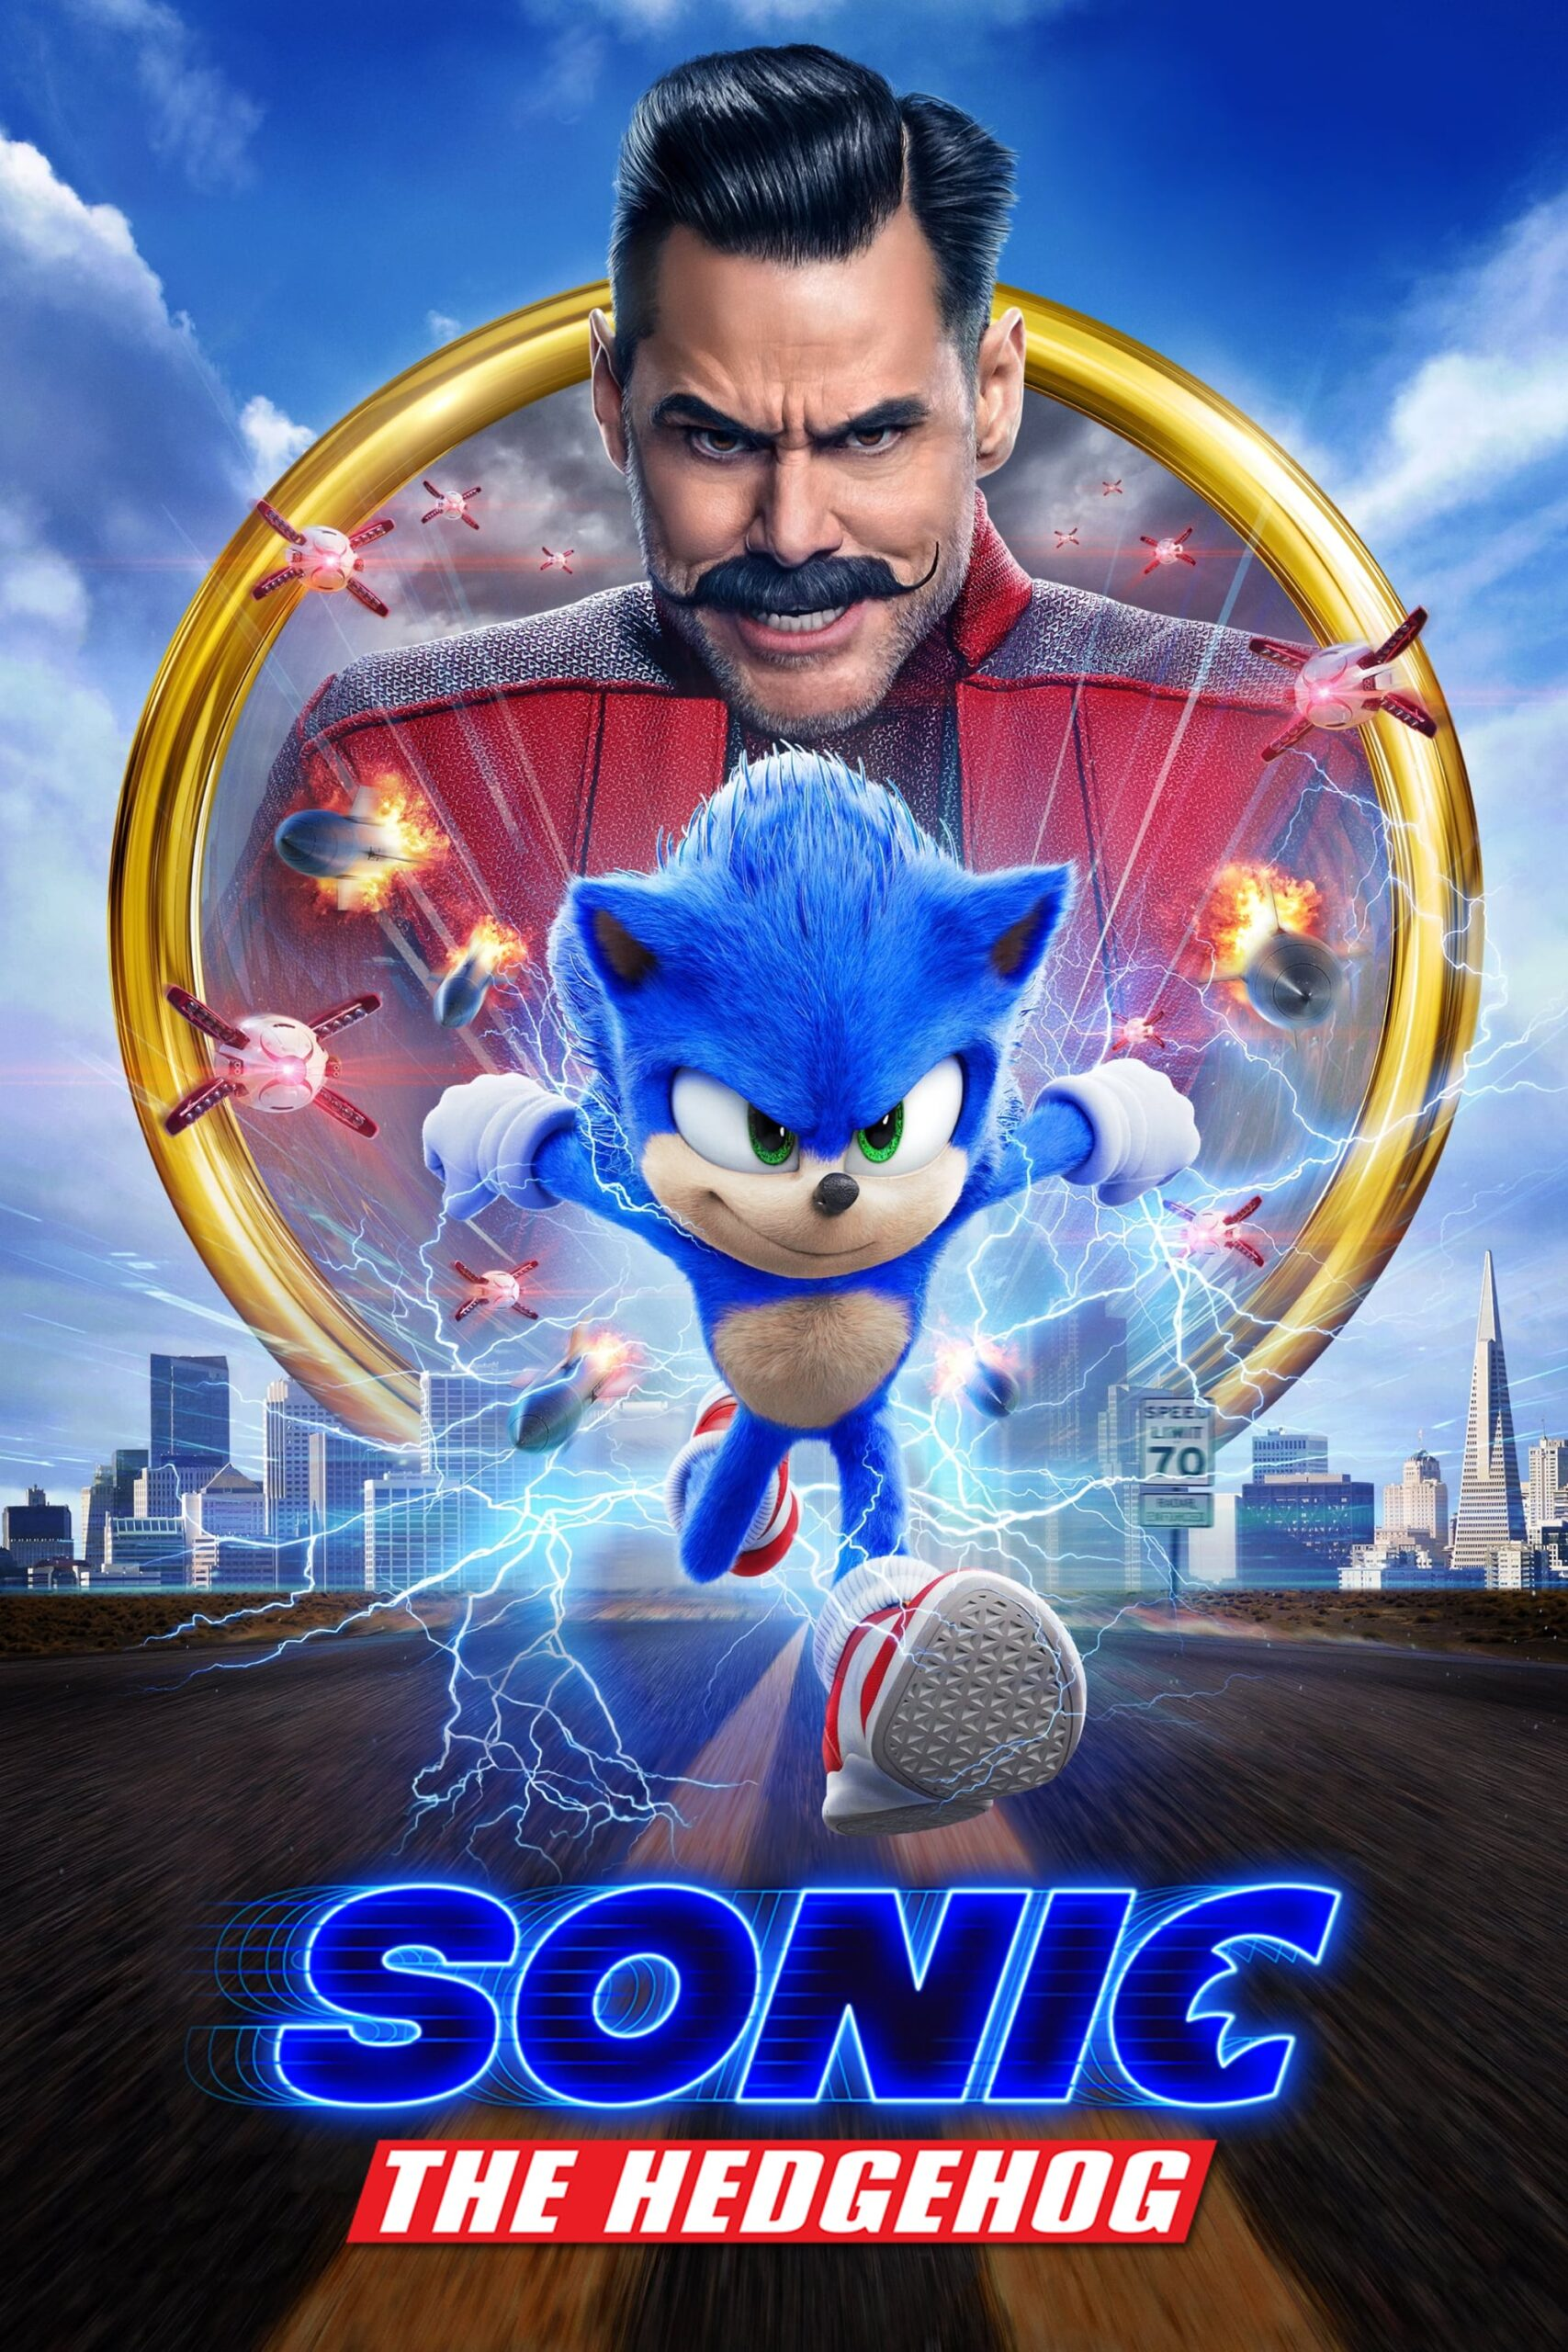 Sonic the Hedgehog Movie Streaming Online Watch on Google Play, iTunes